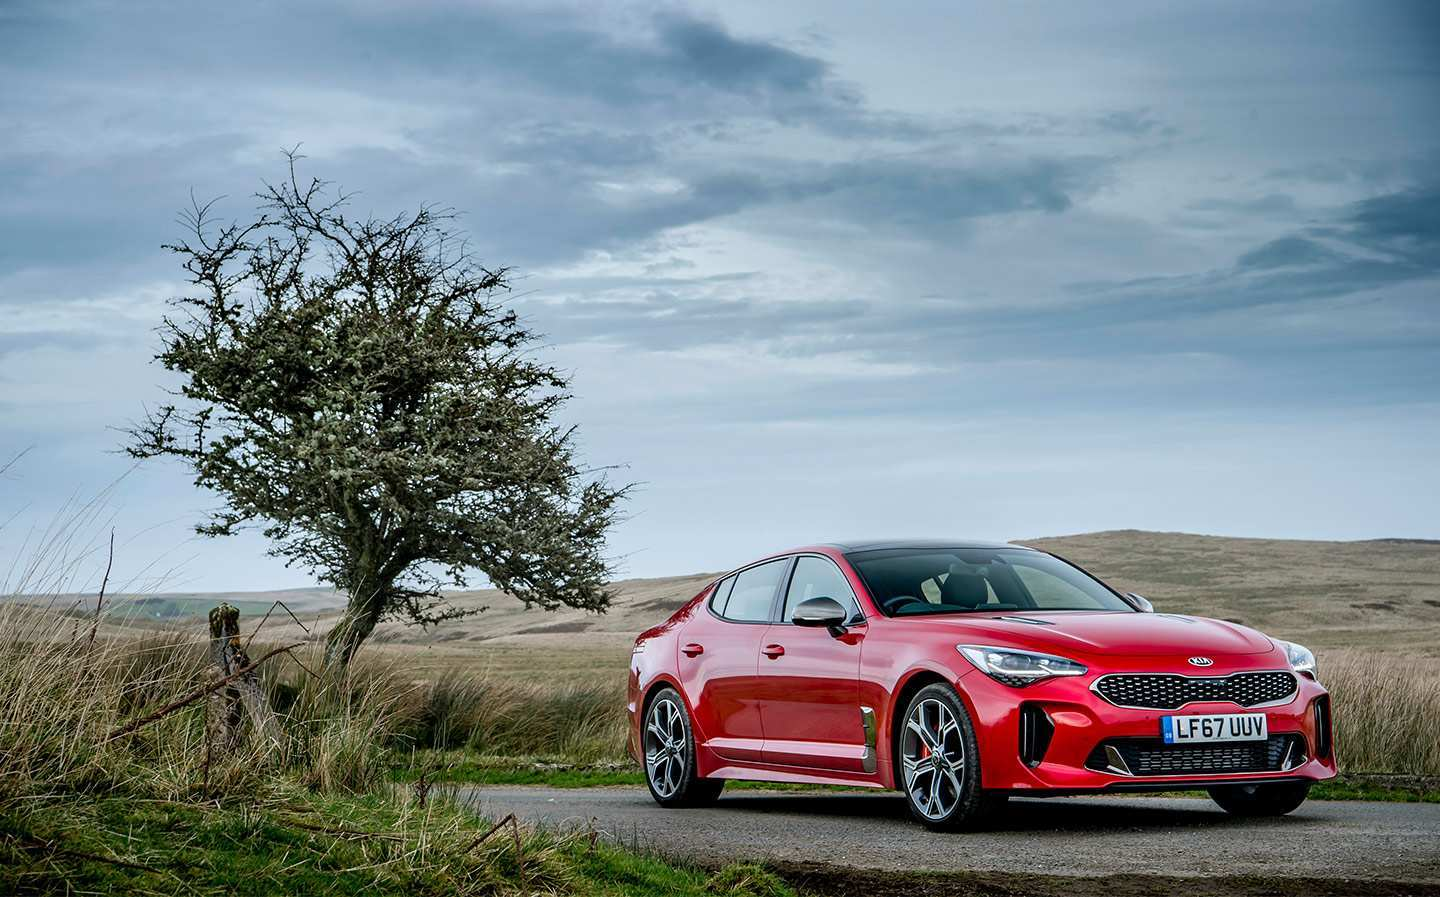 43 Gallery of Best Kia Stinger 2019 Zmiany Redesign And Price Wallpaper for Best Kia Stinger 2019 Zmiany Redesign And Price